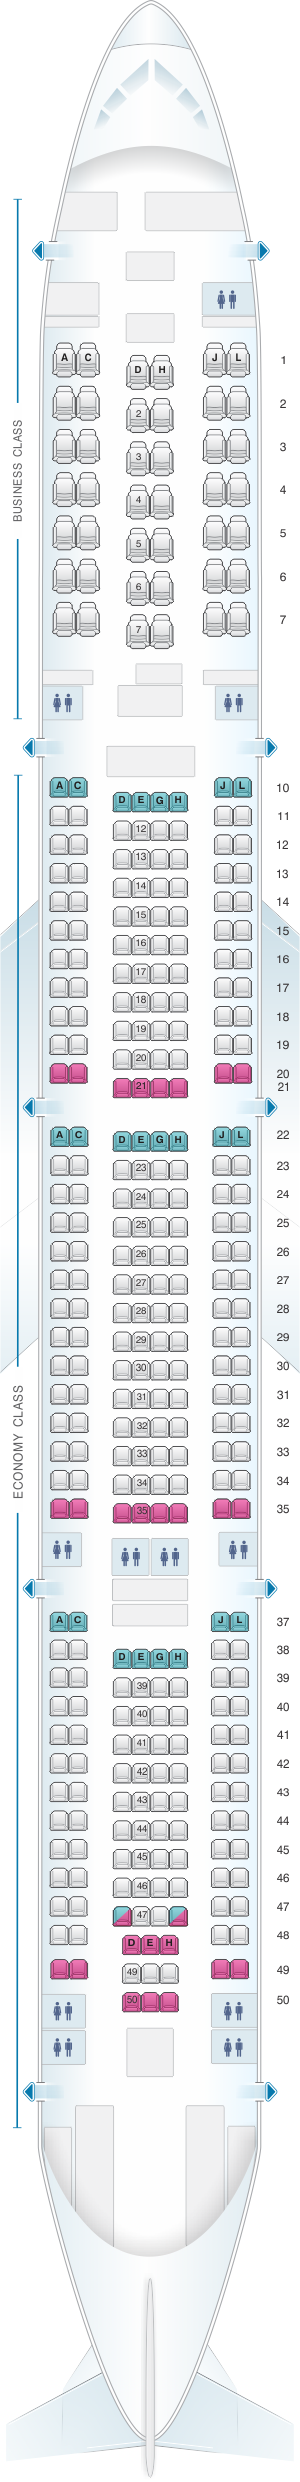 Seat map for Iberia Airbus A340 600